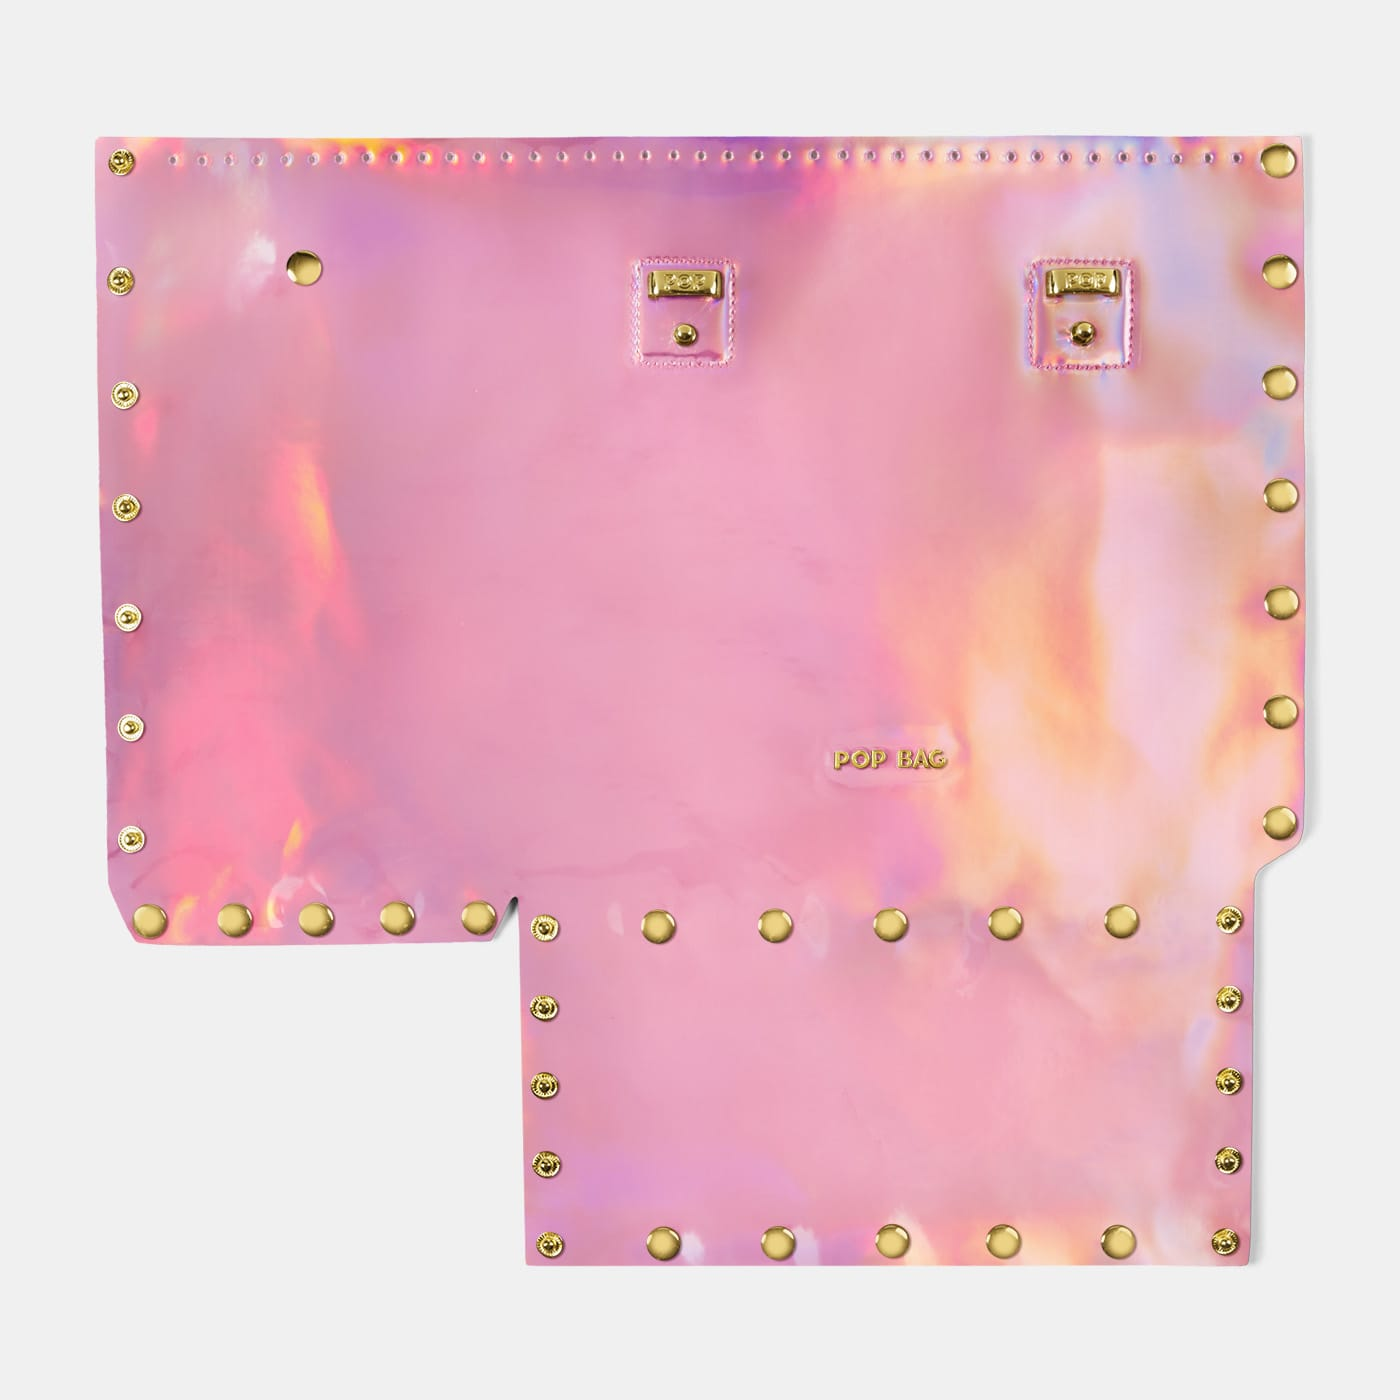 Pop Aurora Front Panel - Pink Iridescent - Medium